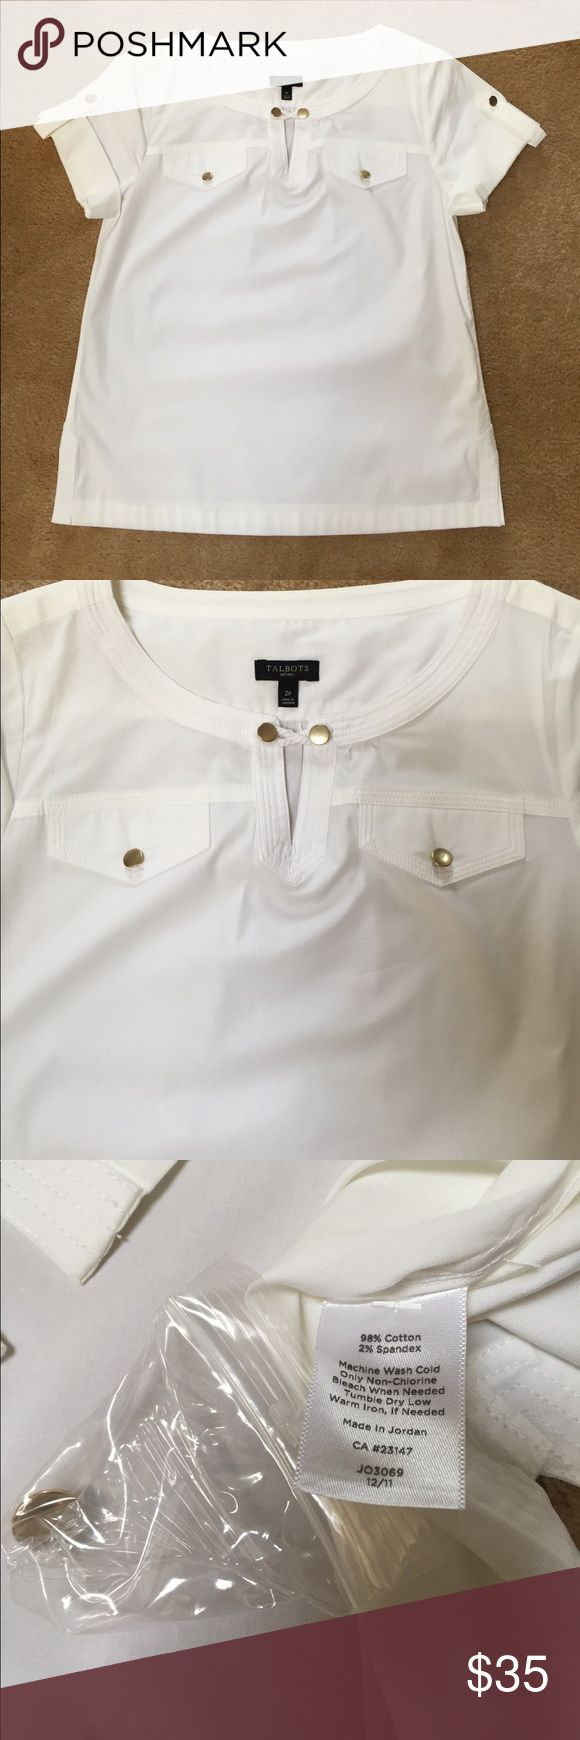 Talbots's Nautical Blouse NWOT NWOT Adorable crisp white nautical pullover Blouse! Pair with shorts or capris for your next boat  ride! Talbots Tops